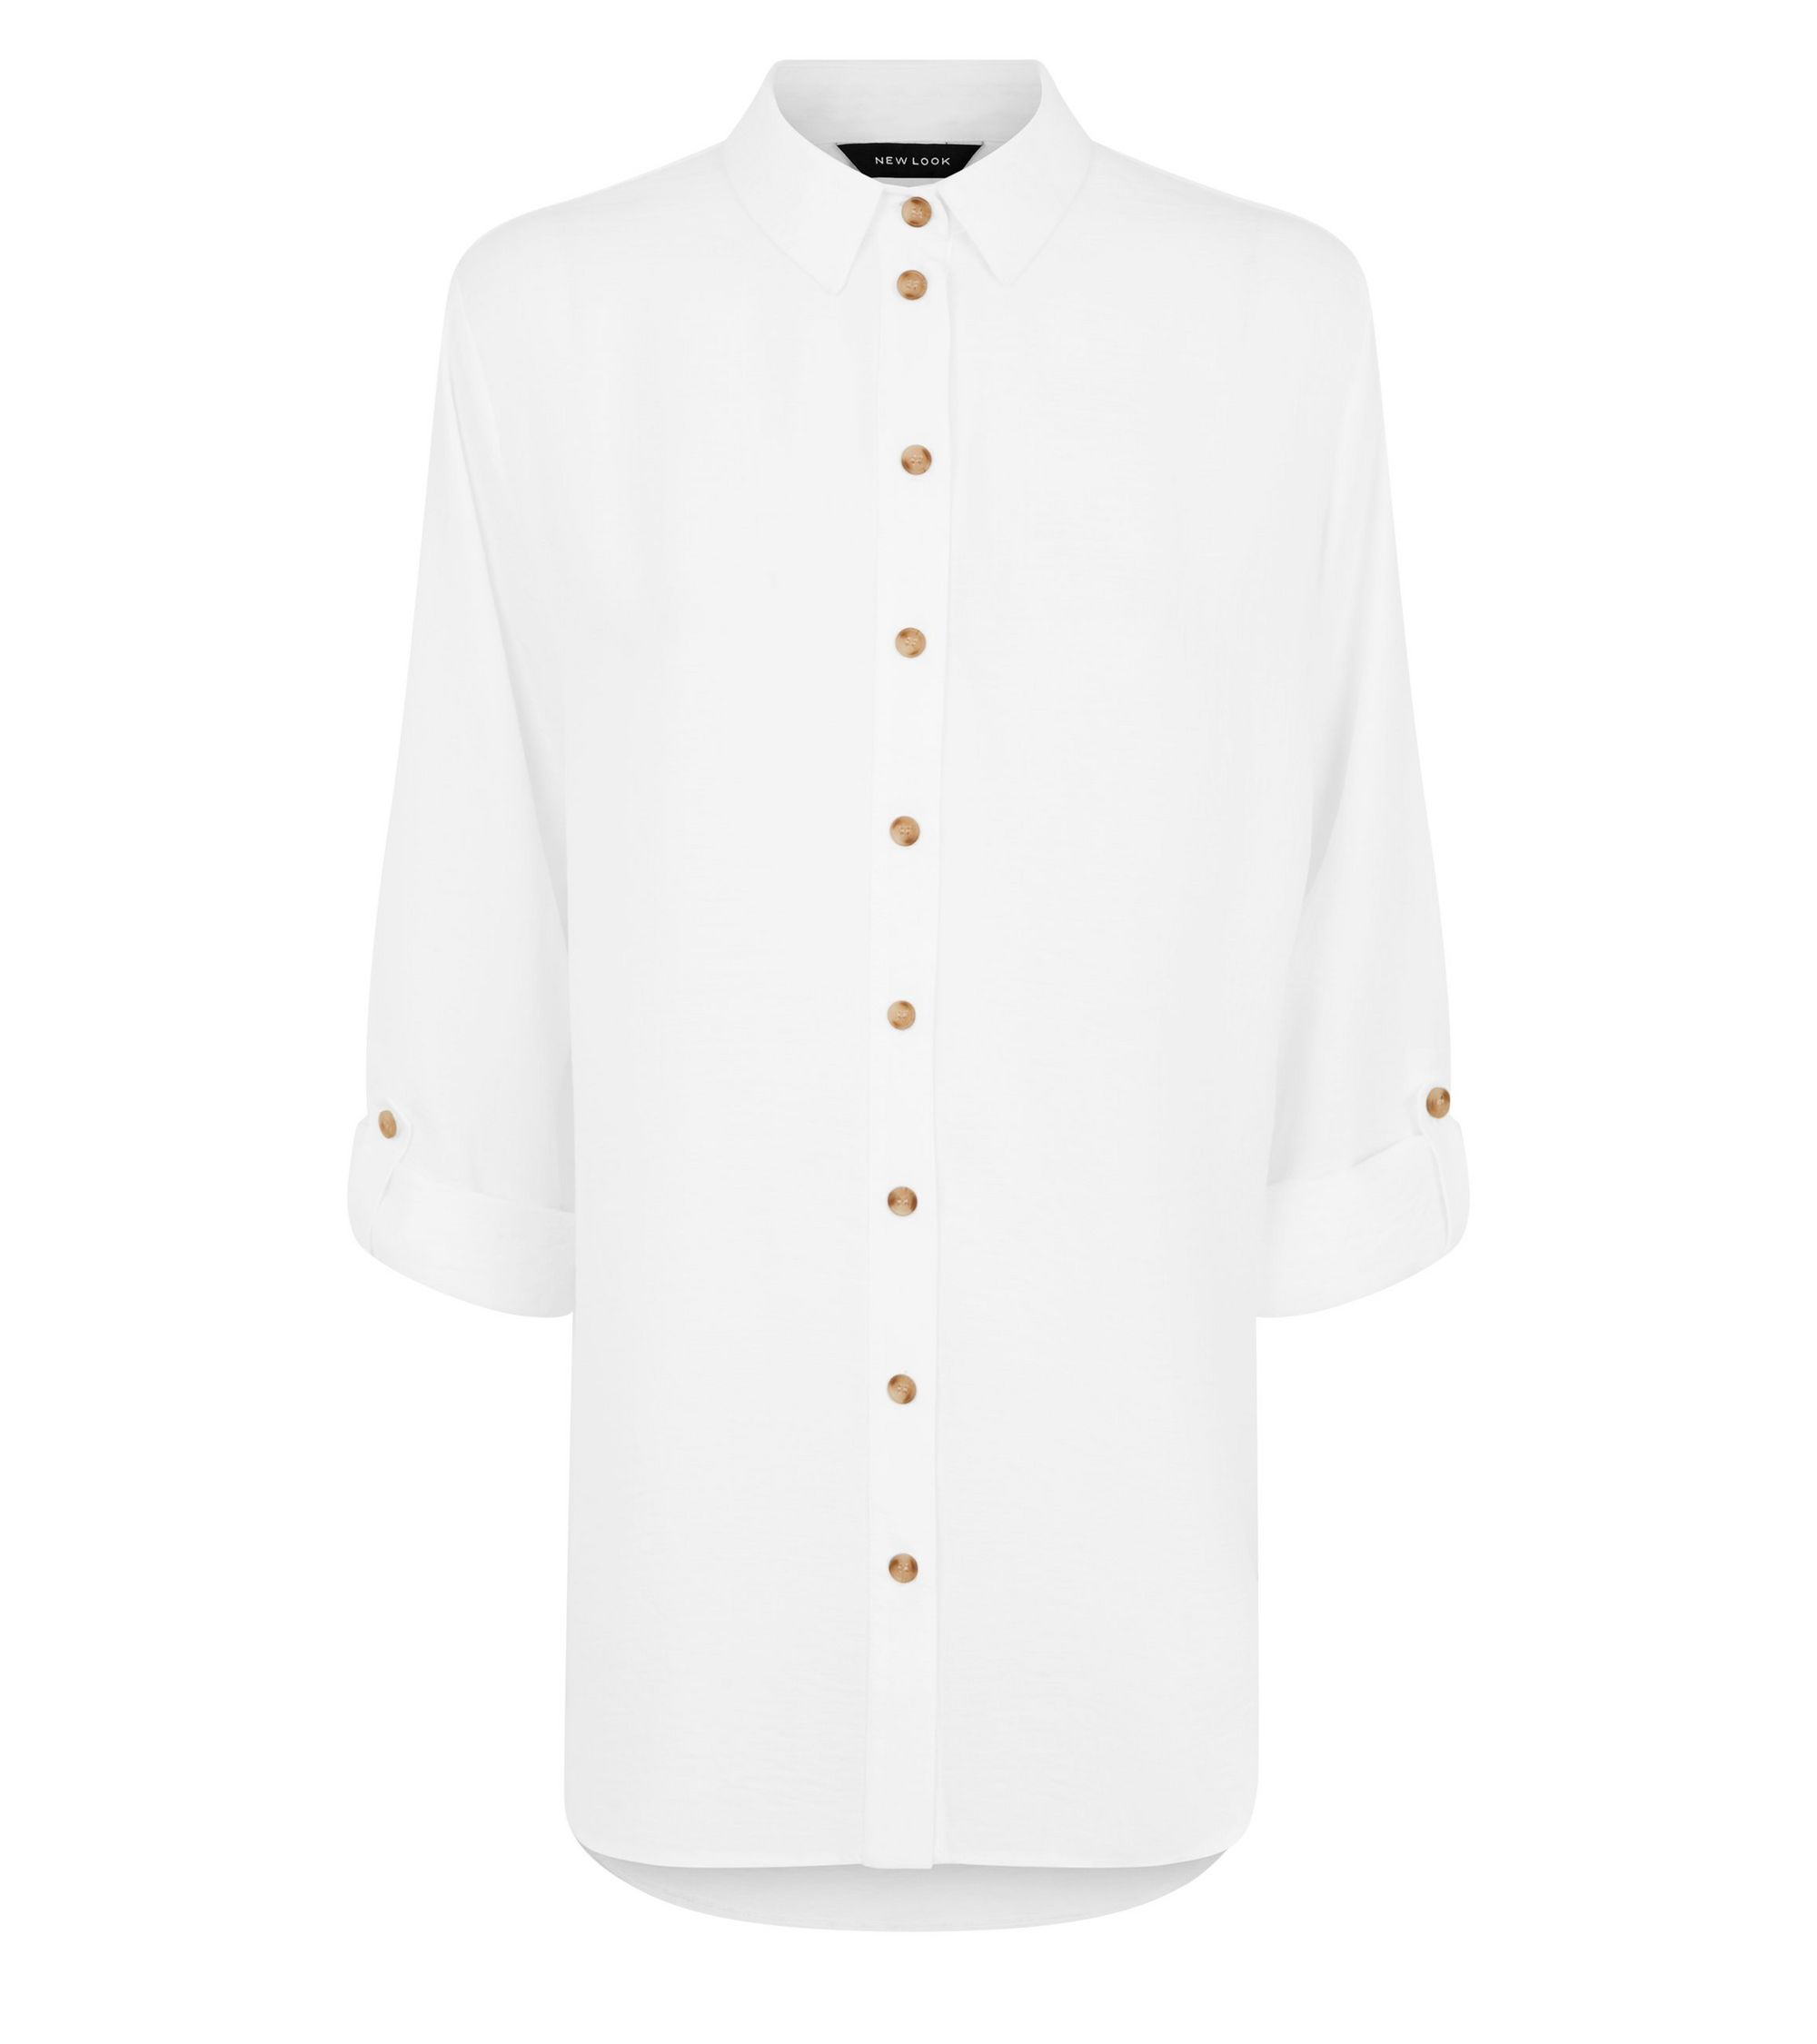 3a2067d2 New Look Off White Linen-Look Longline Shirt at £22.99 | love the brands